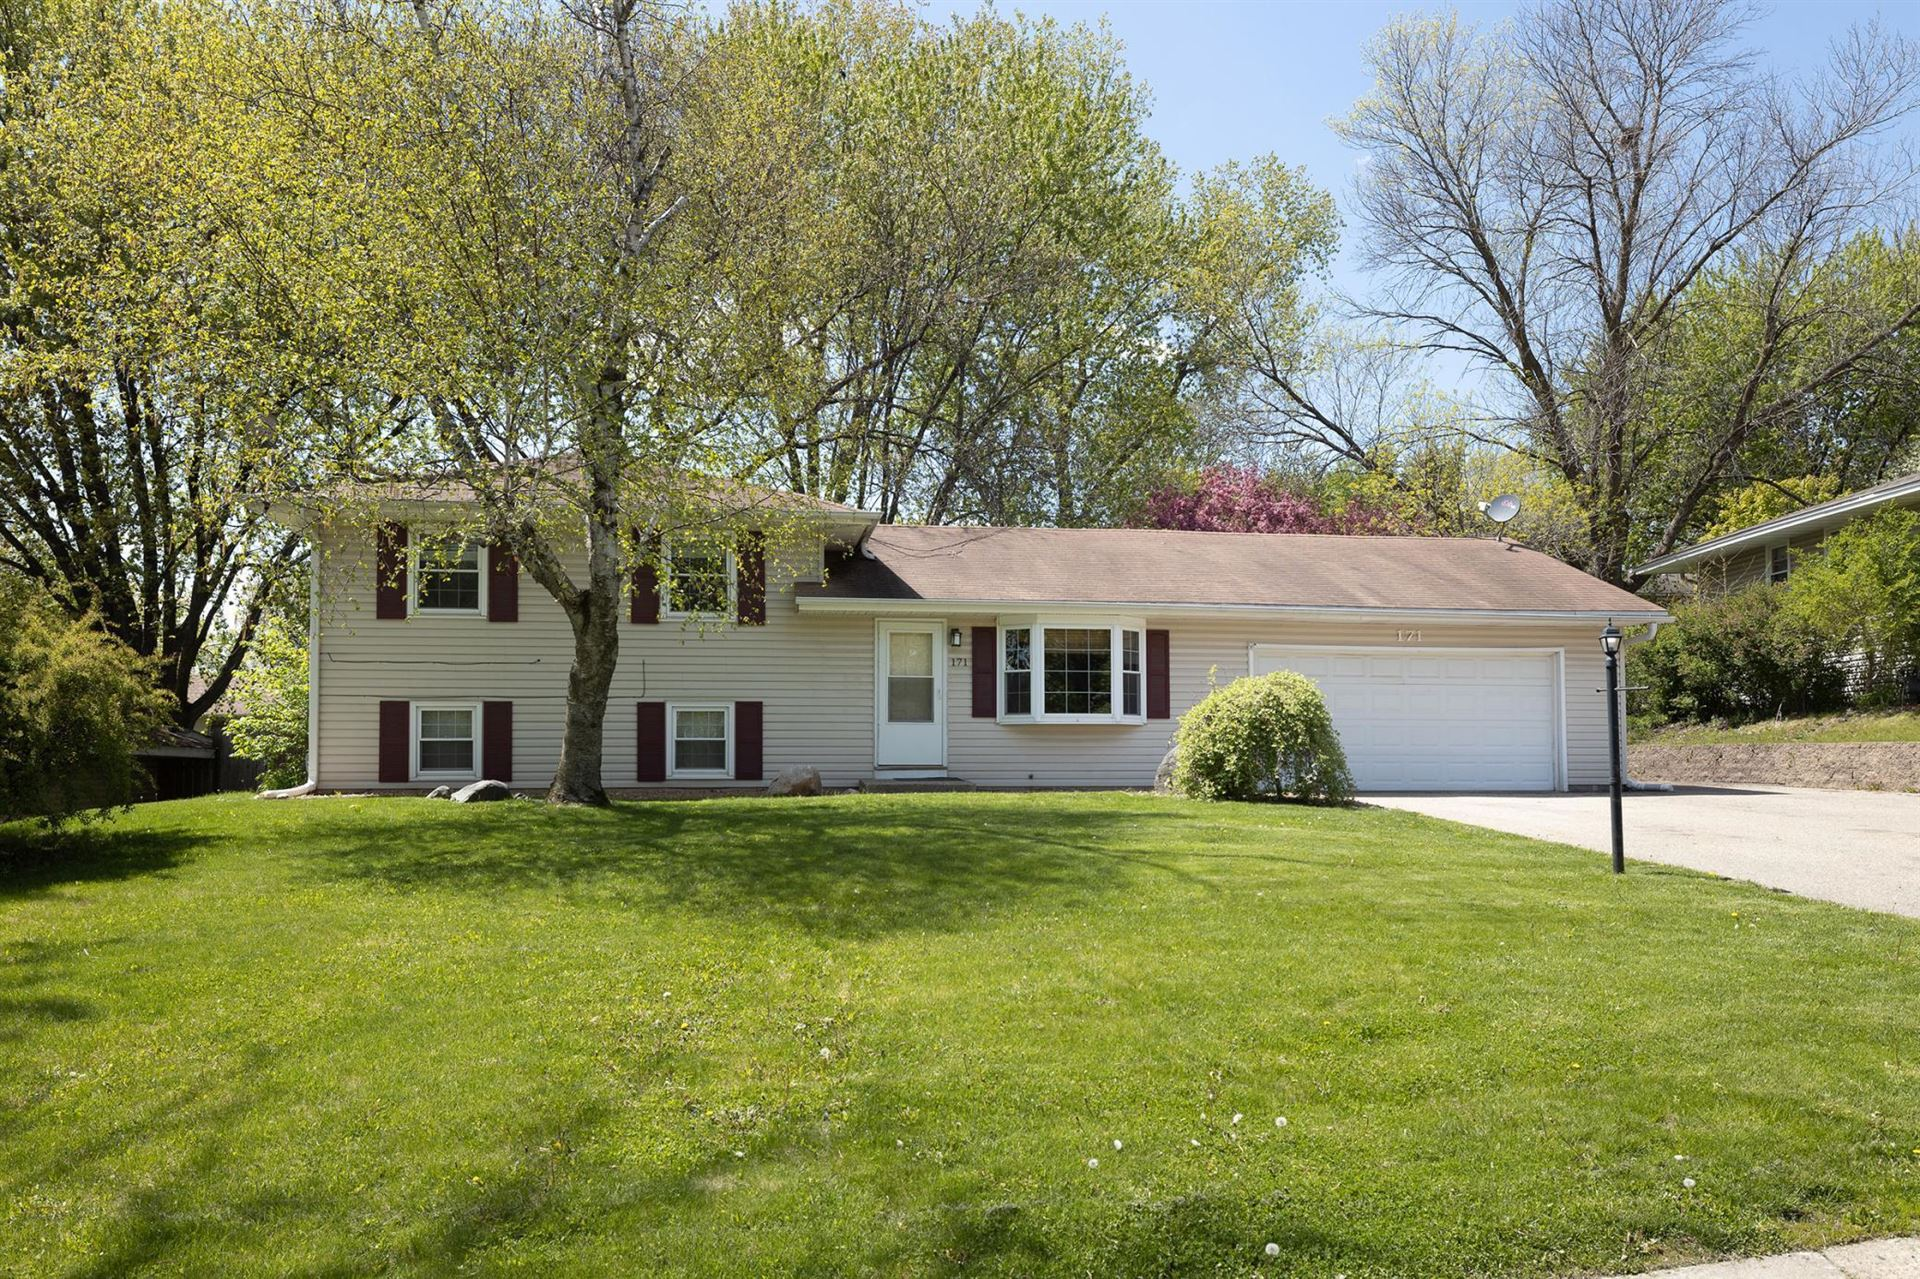 Photo of 171 Juniper Lane, Apple Valley, MN 55124 (MLS # 5737738)